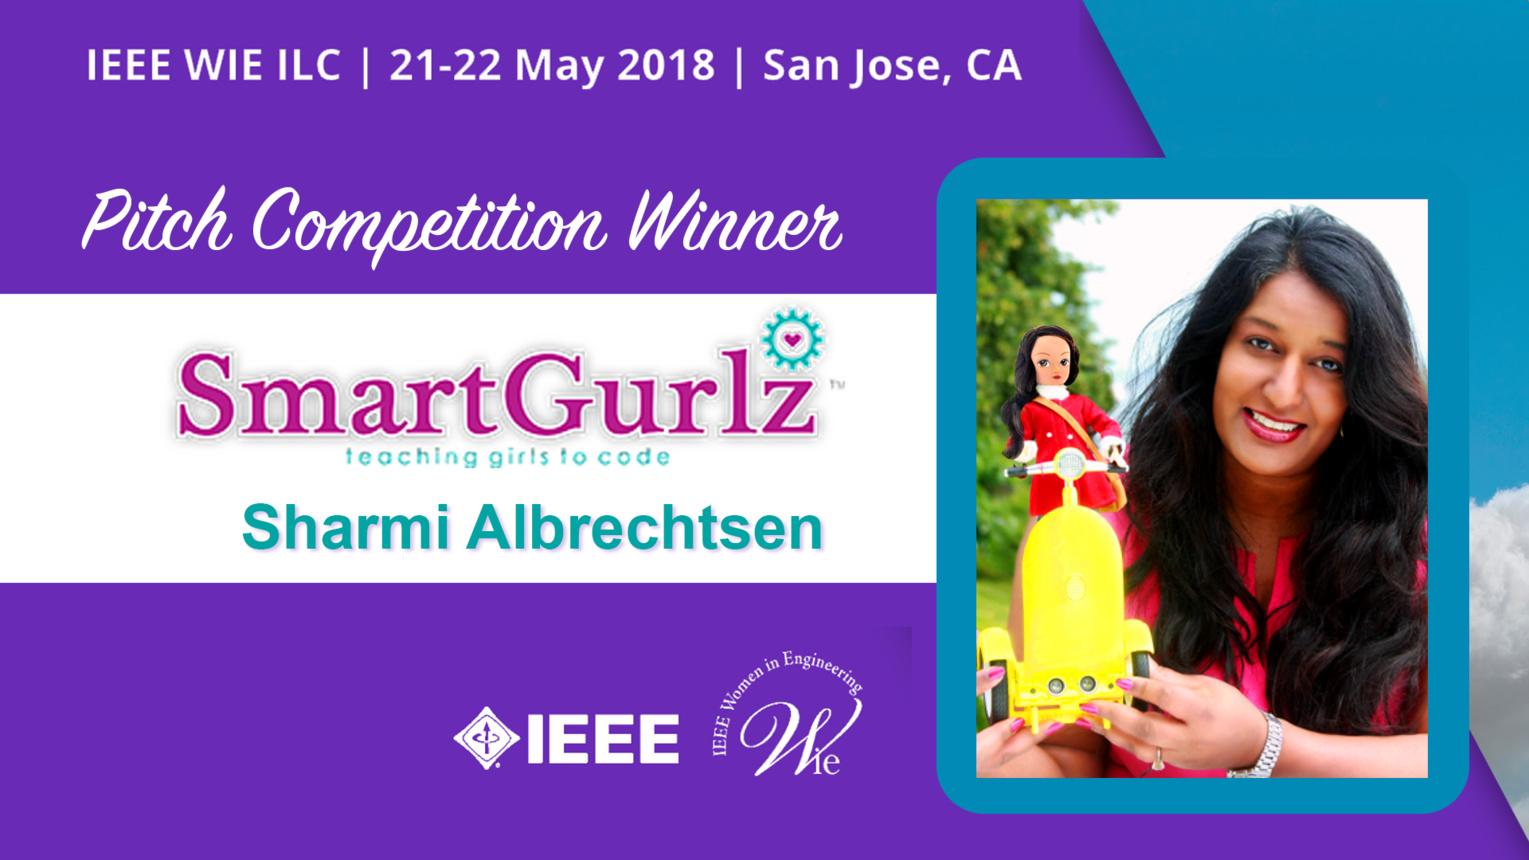 Pitch Competition Winners - 1st Place: Smart Gurlz - WIE ILC 2018